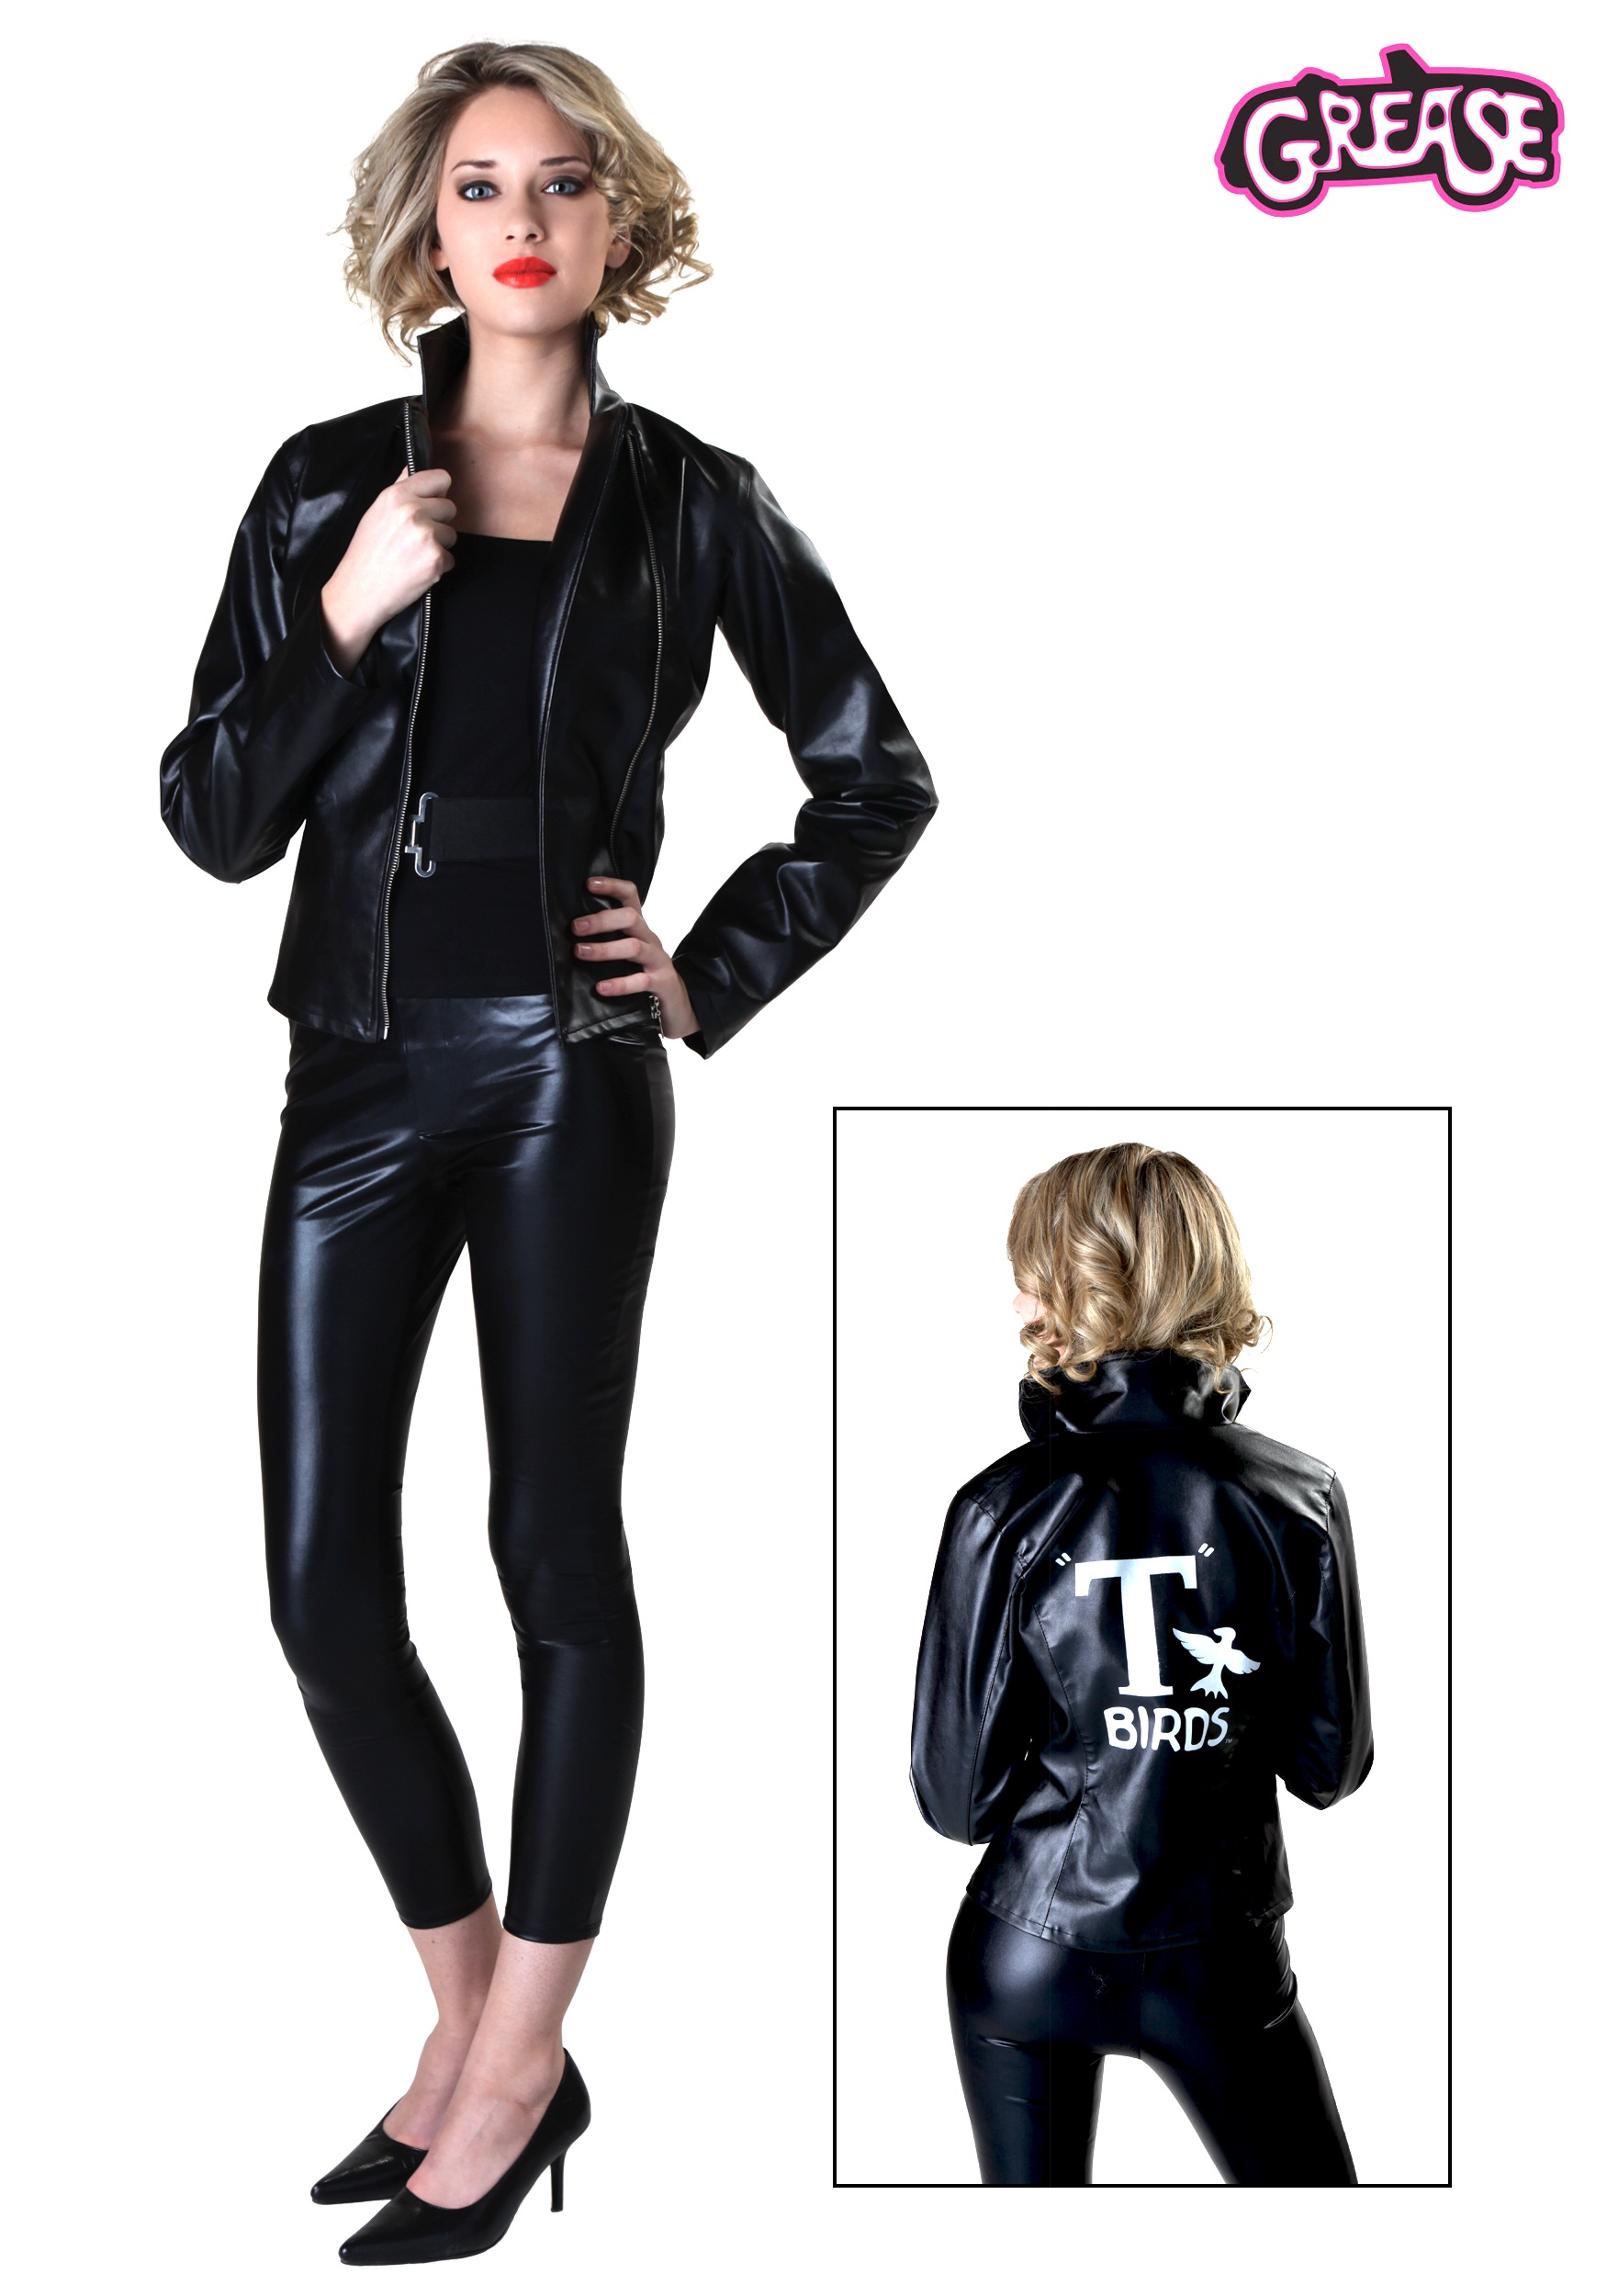 womens grease t birds jacket